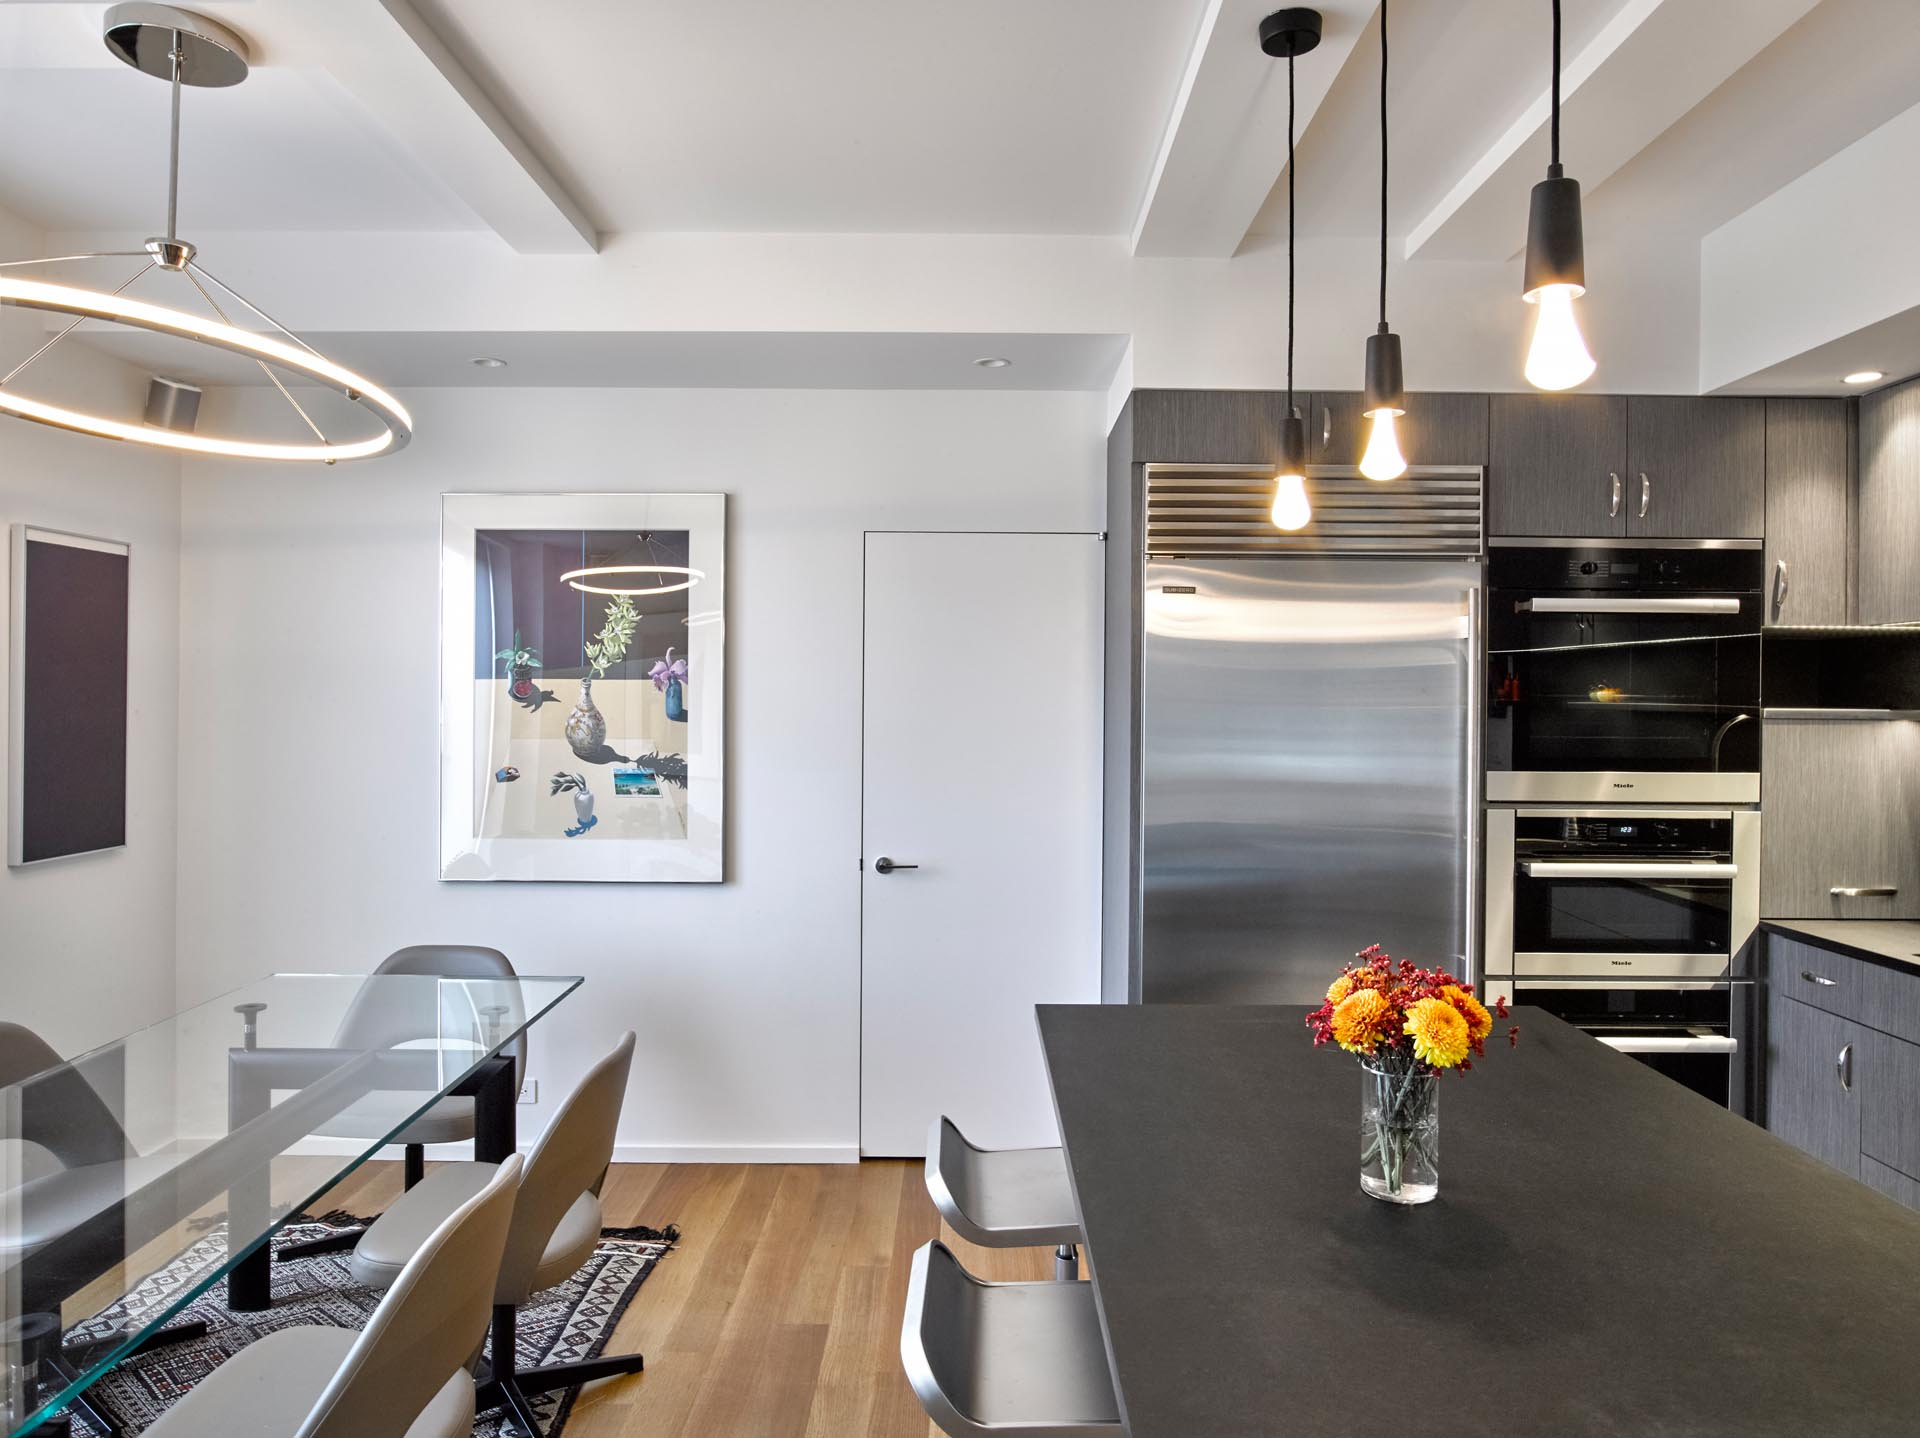 A modern kitchen with gray cabinets, LED undermount lighting, and Paperstone countertops and backsplash.